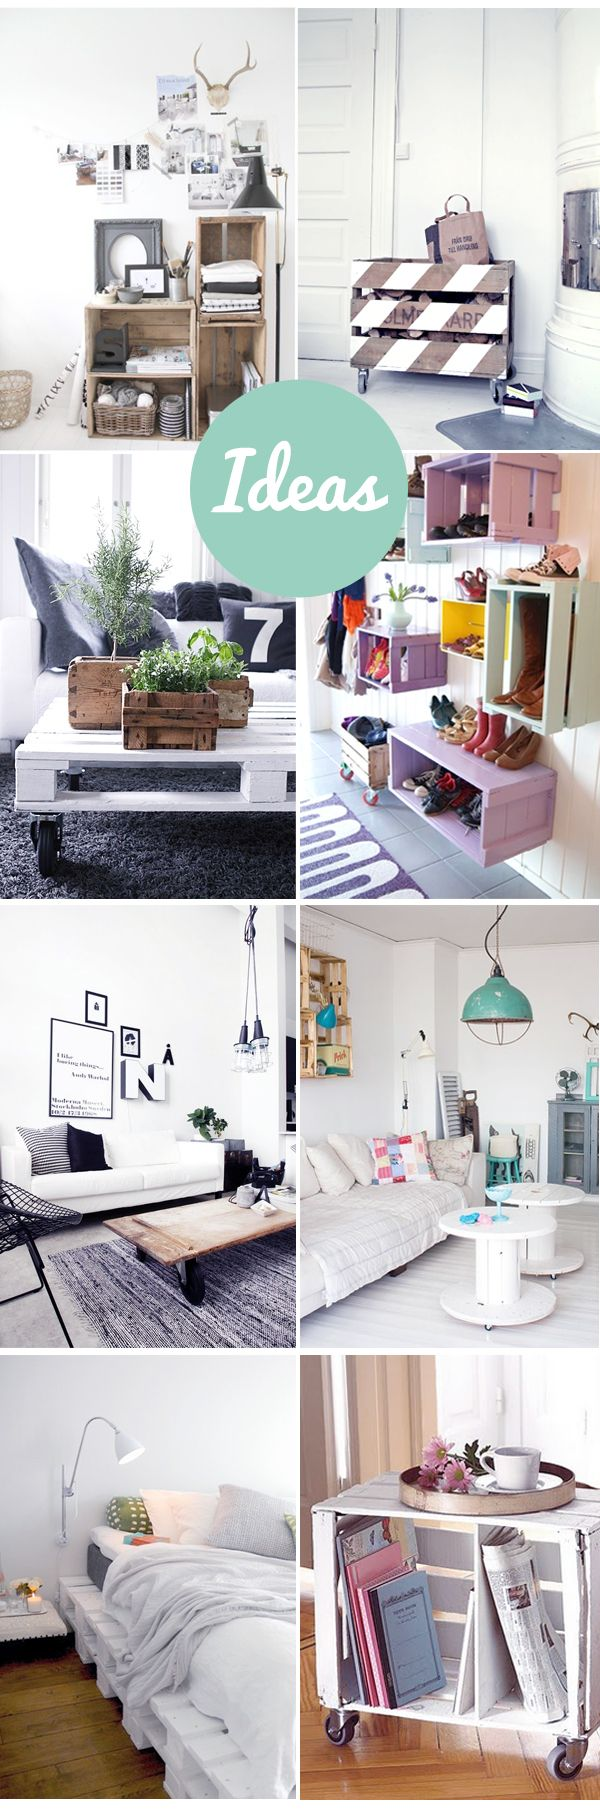 78 images about ideias para a casa on pinterest nooks - Muebles de madera reciclados ...